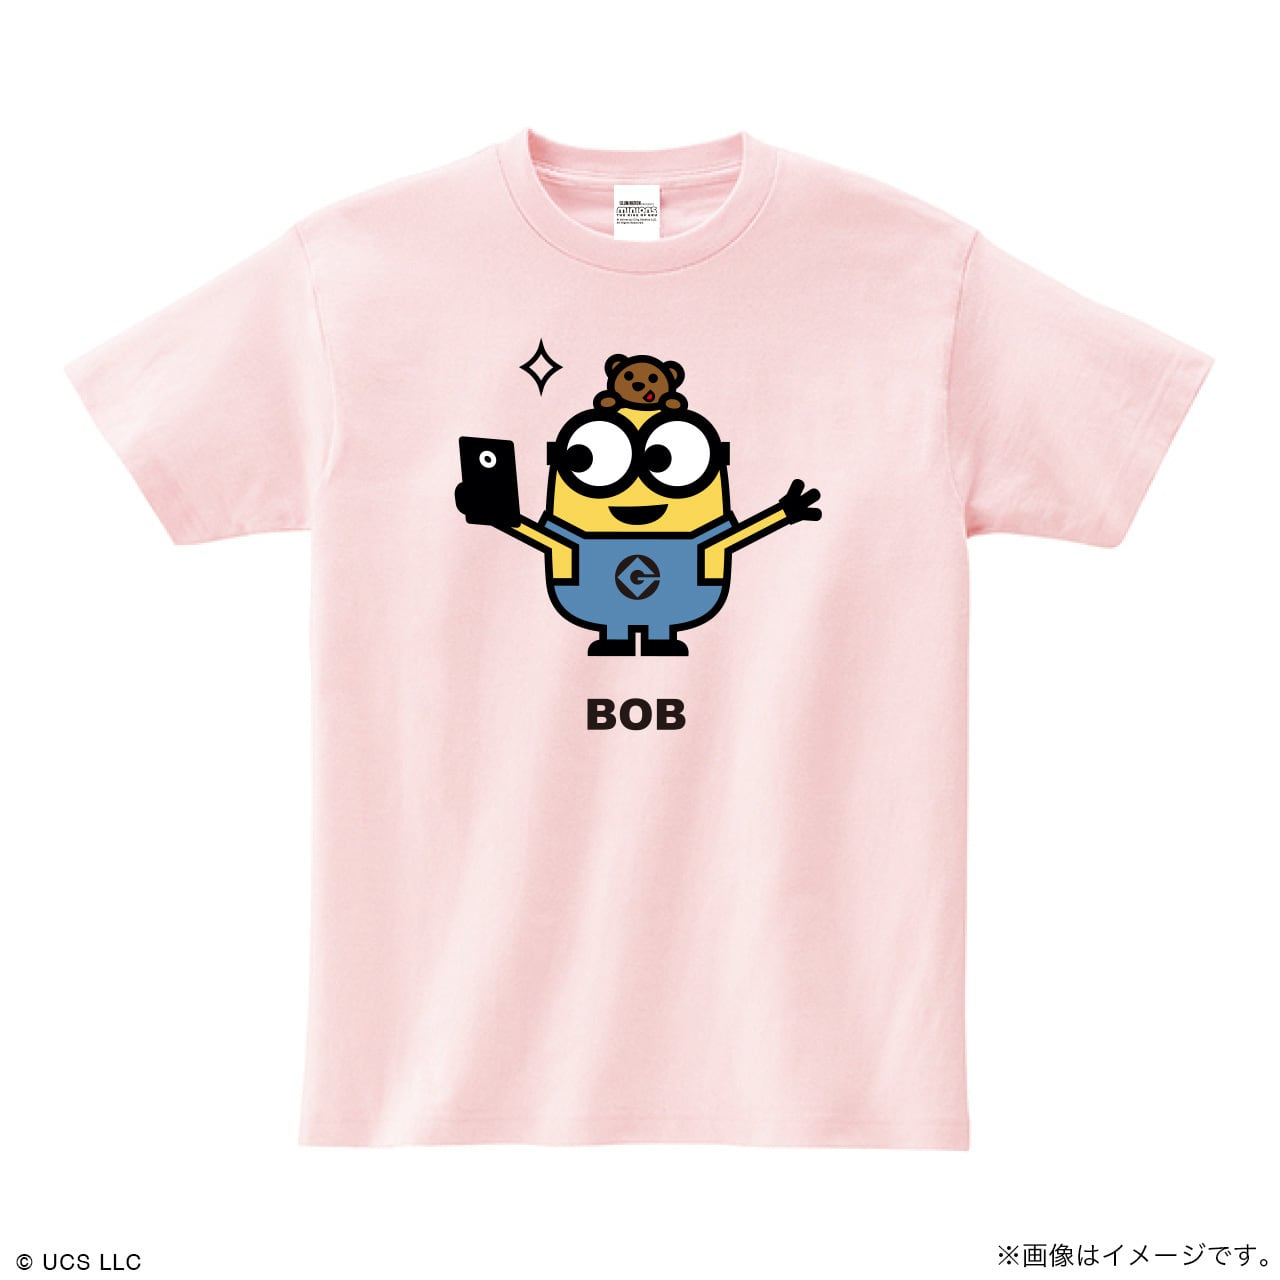 Tシャツ/ミニオン(ボブ ピンク)【MINIONS POP UP STORE 限定】